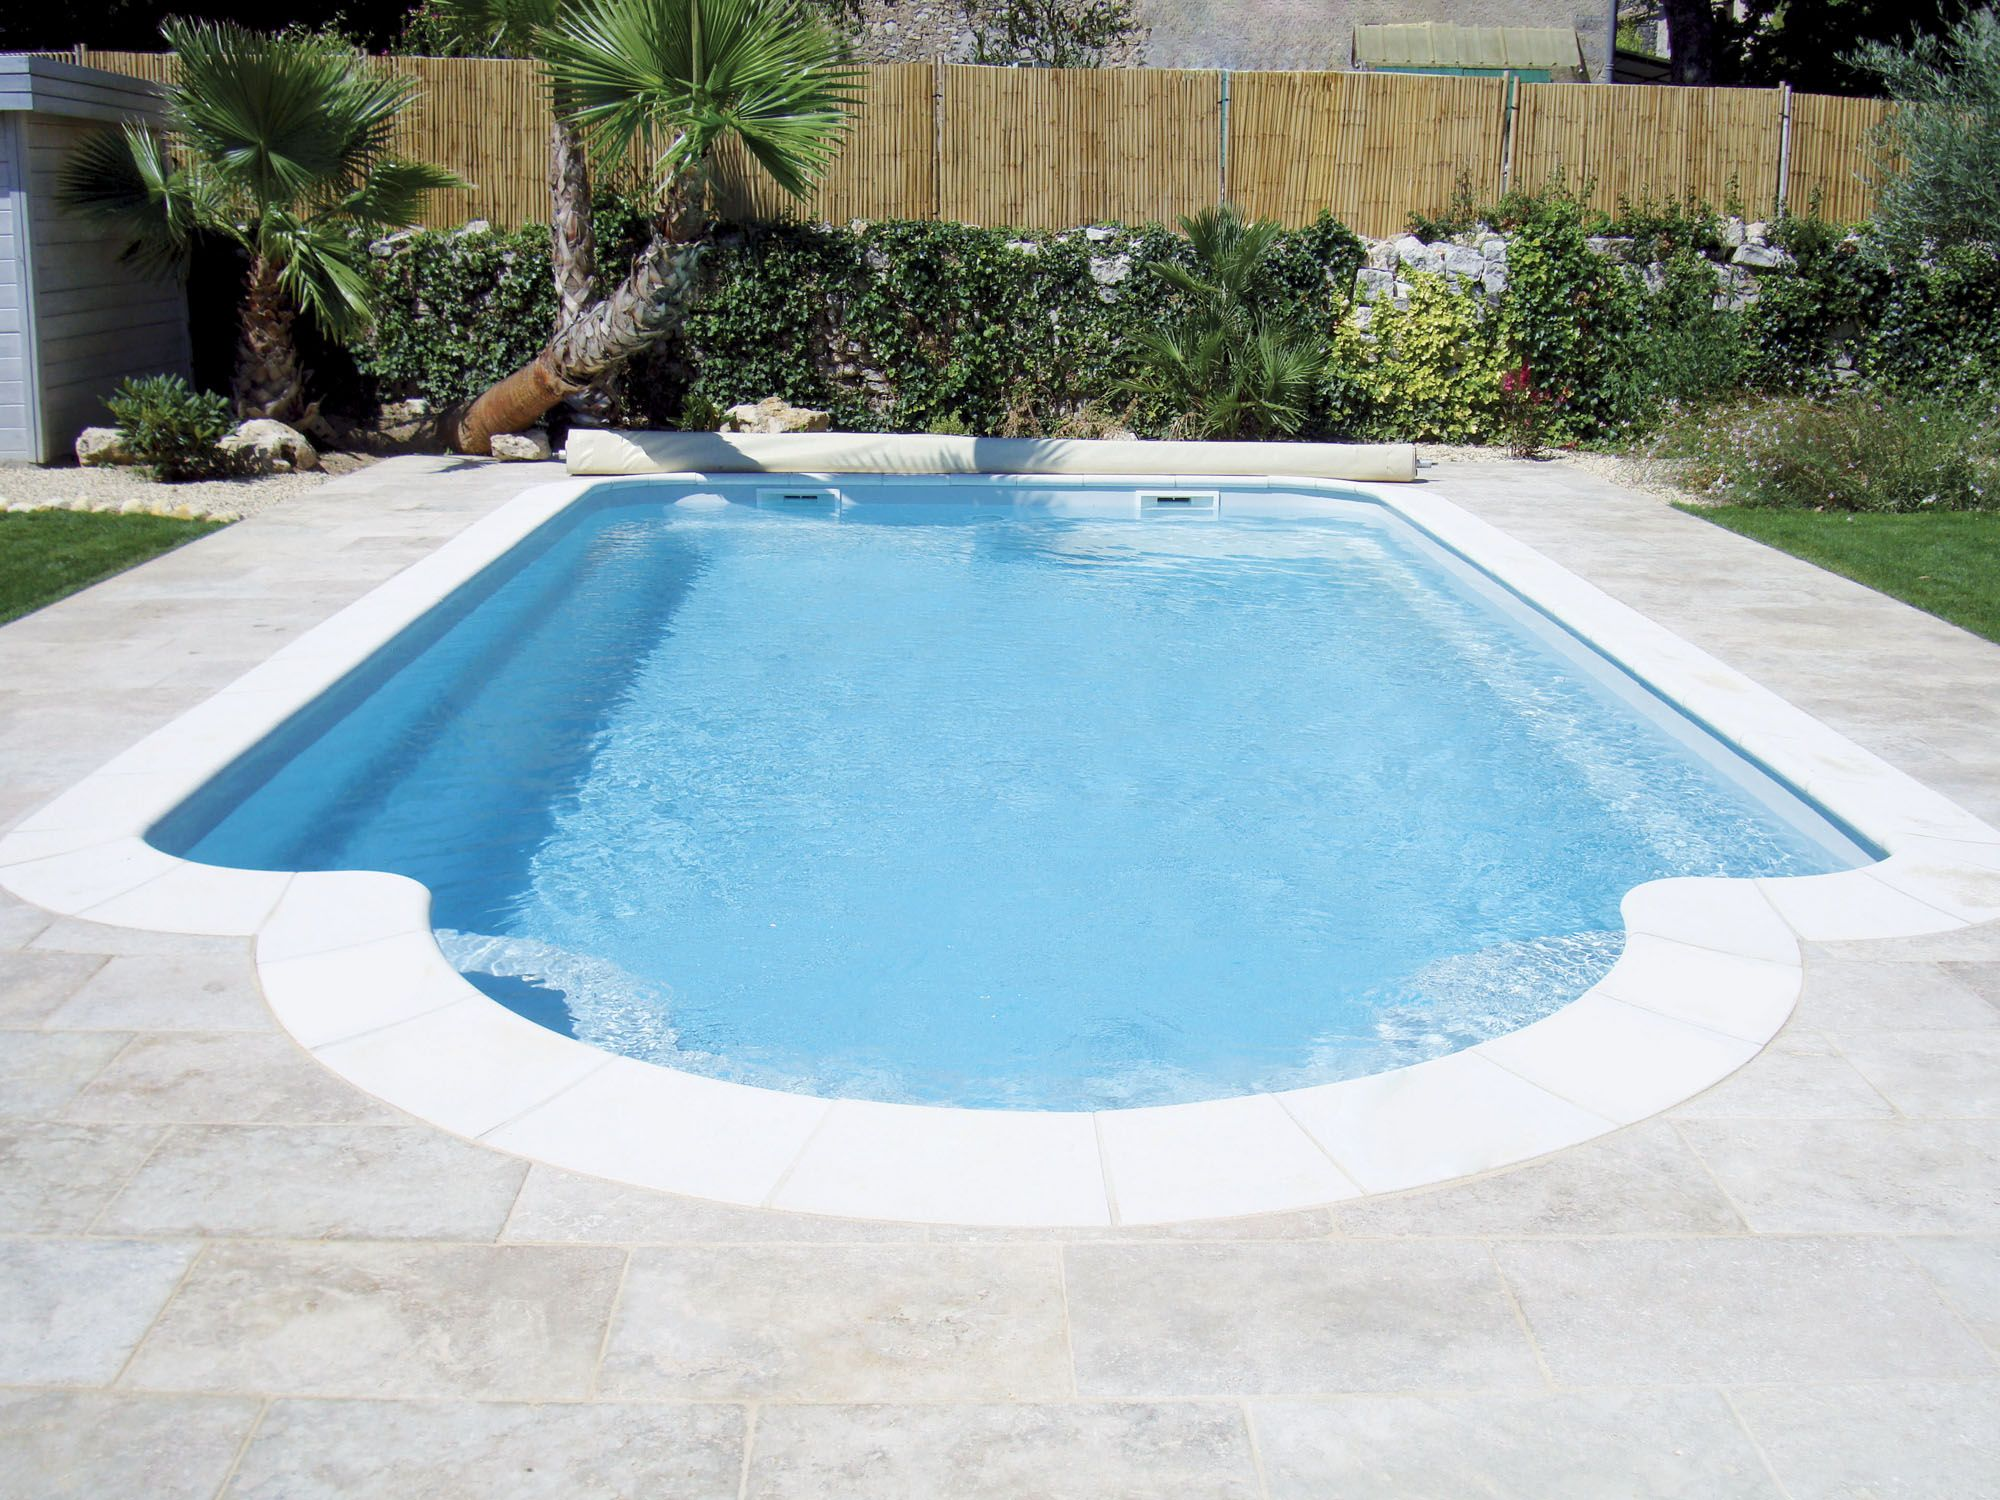 Piscine coque polyester arp ge fabrication fran aise for Piscine polyester